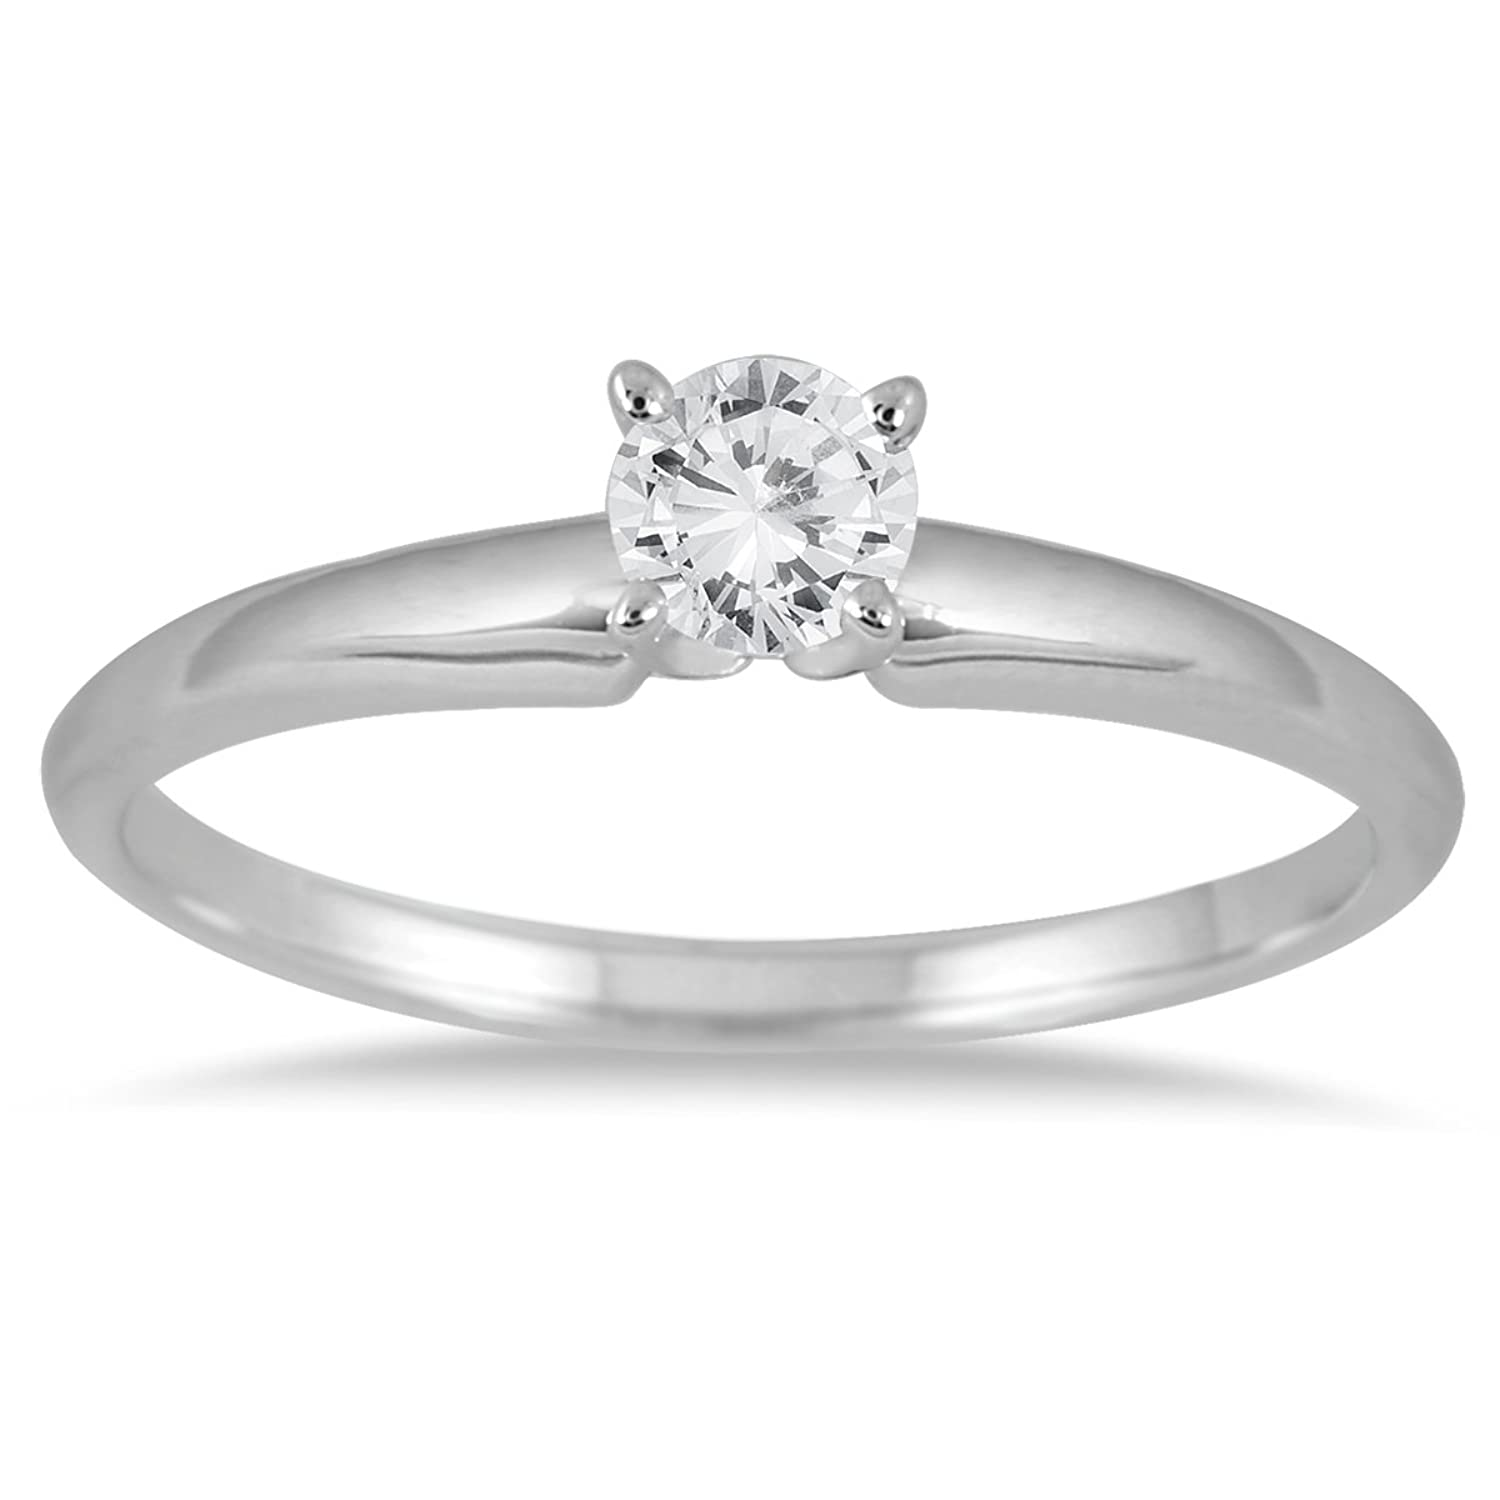 Amazon 1 10 Carat Round Diamond Solitaire Ring in 14K White